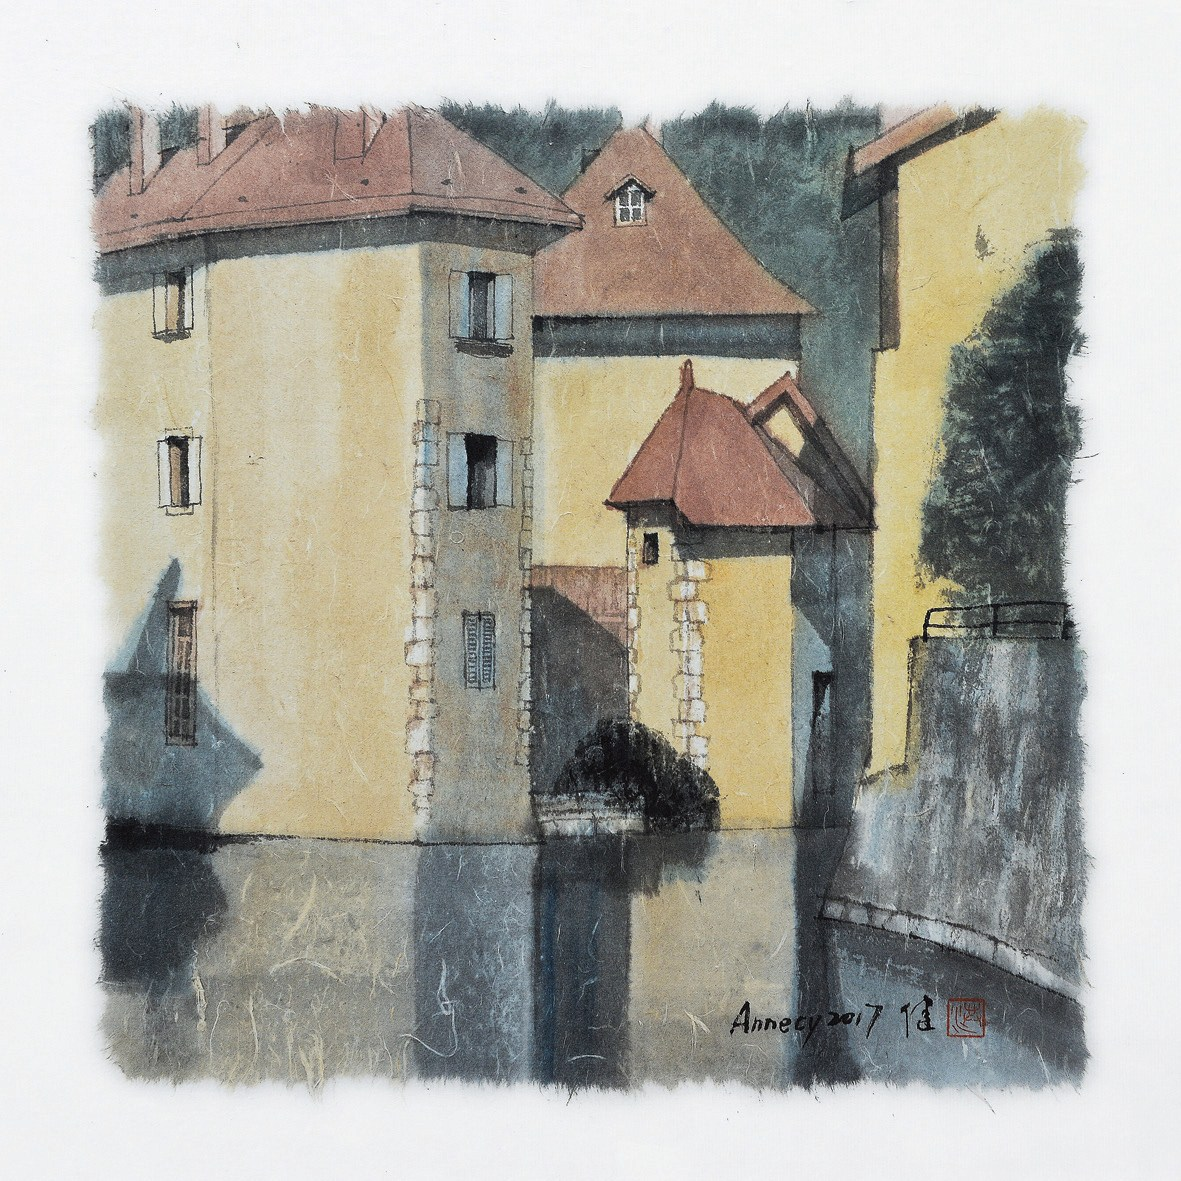 """My Impression of France No. 4"" by Hong Jian"